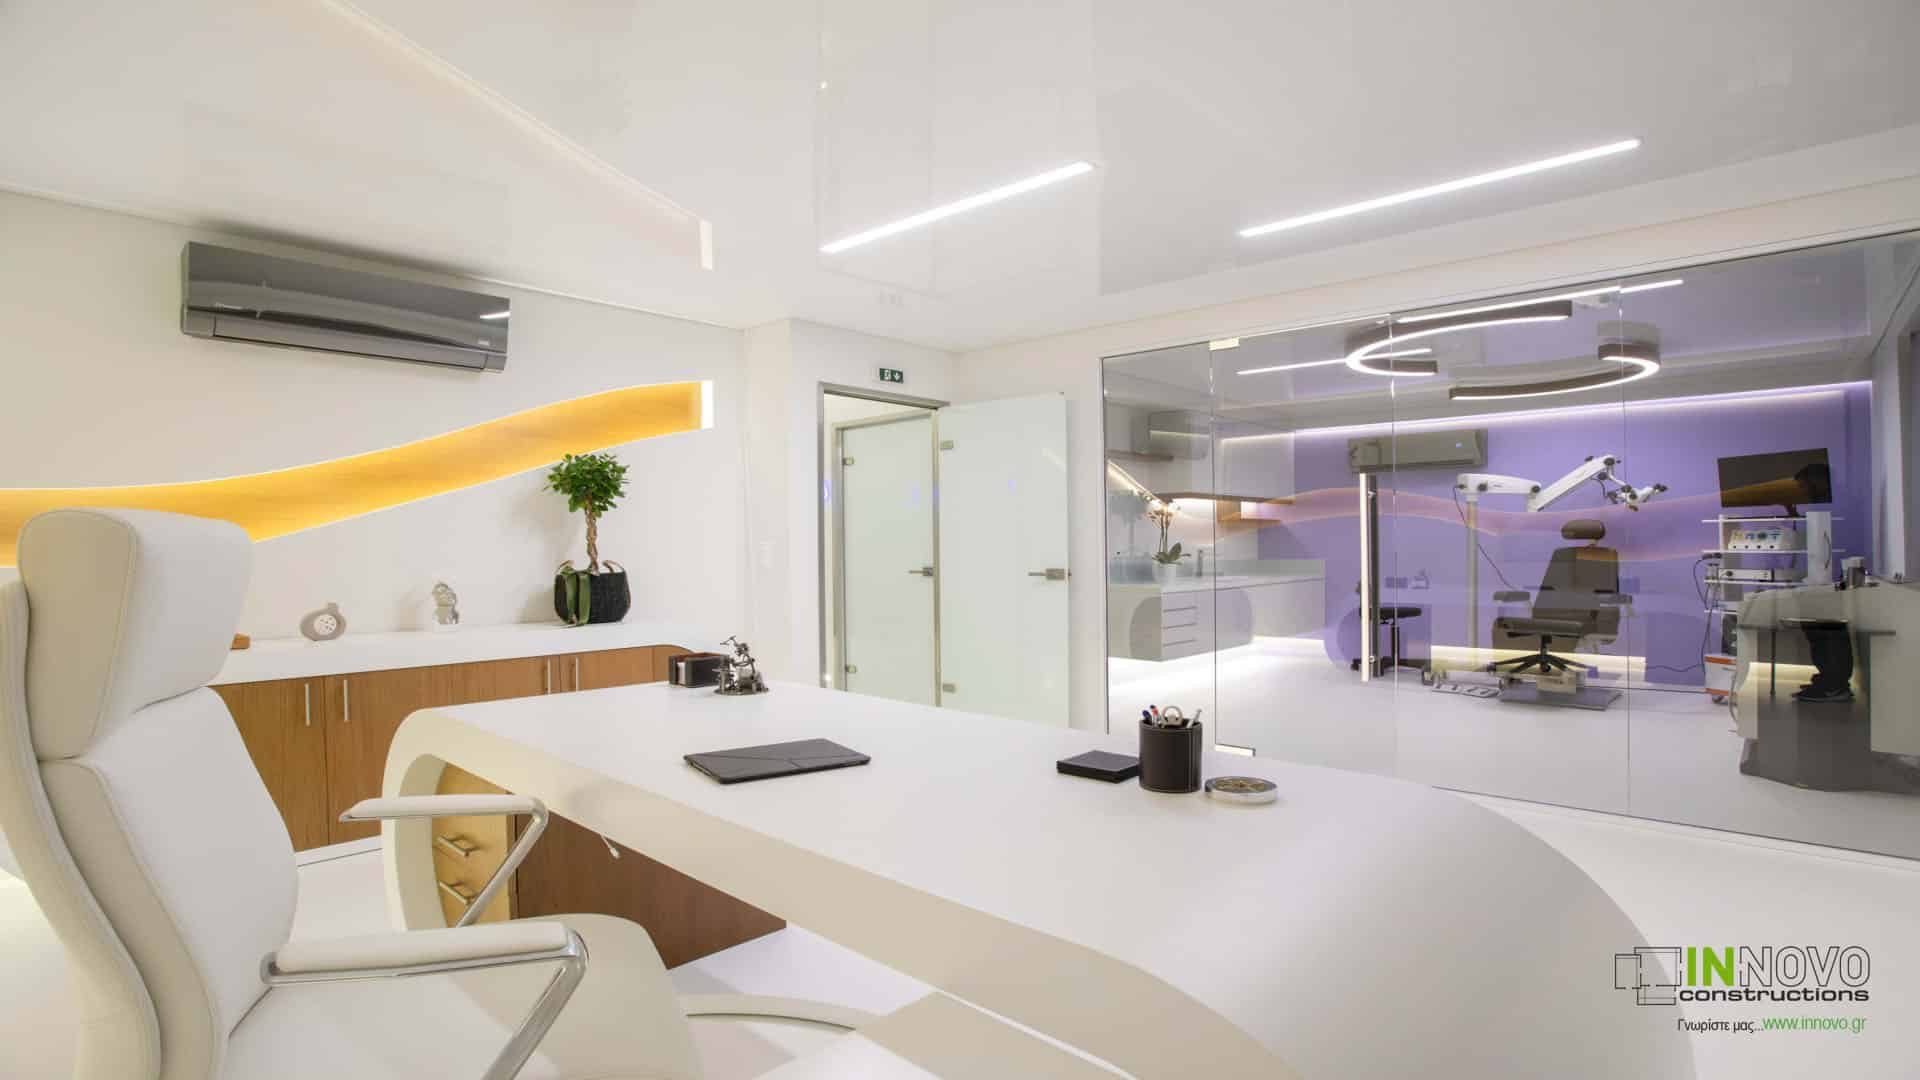 2607-κατασκευη-ωρλ-παλληνh-otolaryngologist-clinic-construstion-office-2